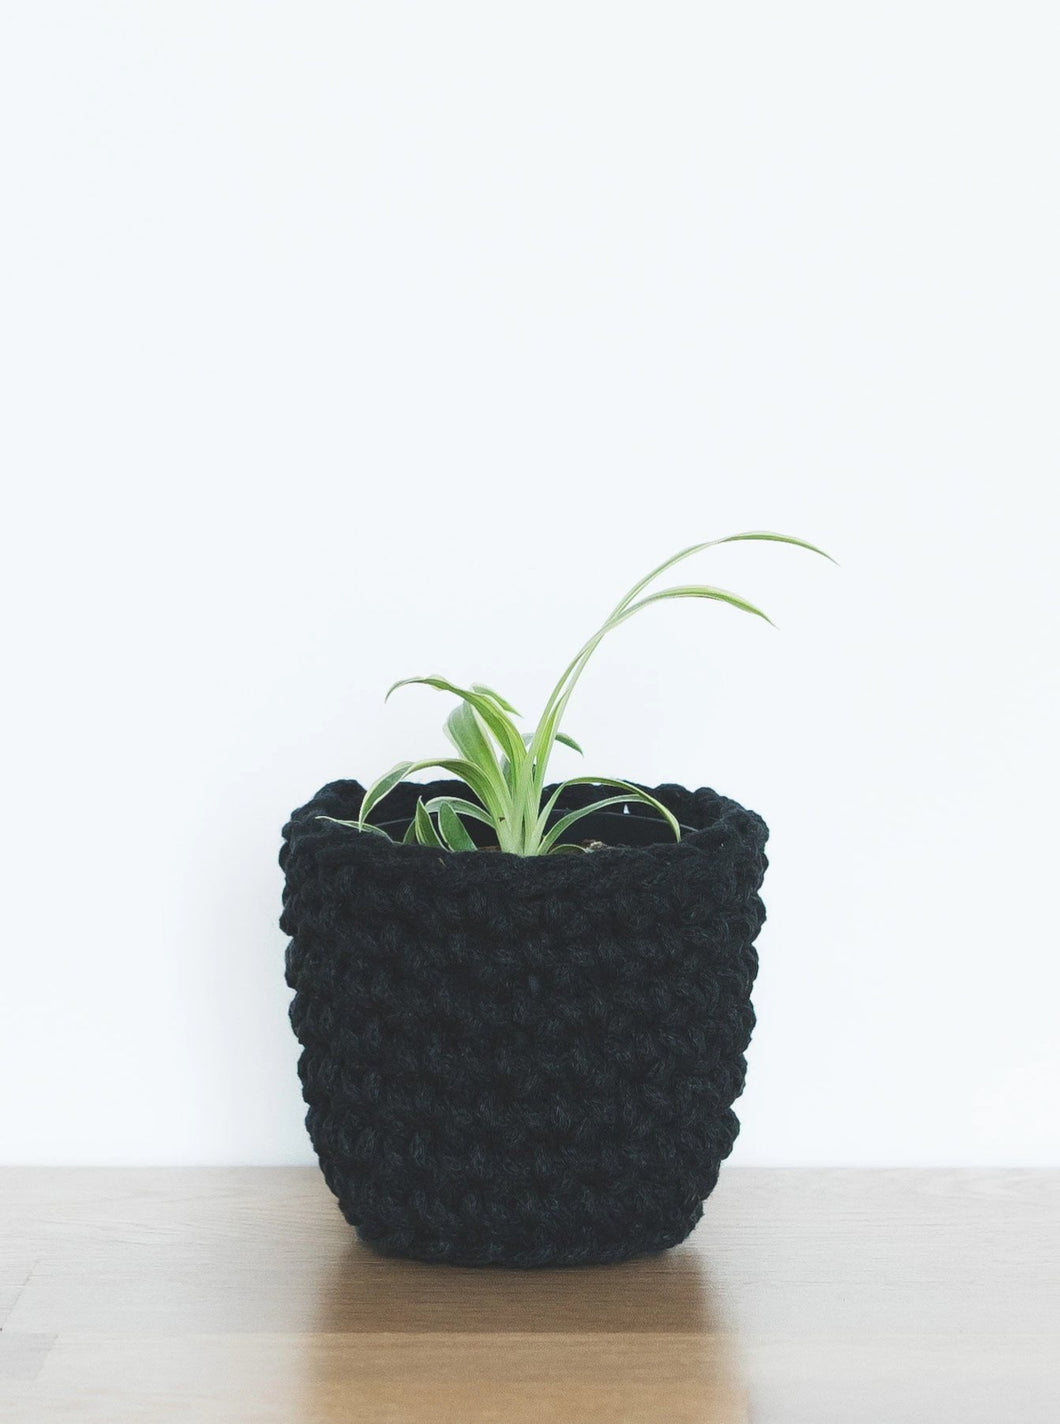 Mini eco plant pot - black - Knttd coloured handmade plant pot cover made from recycled cotton yarn with watertight inner pot made from recycled plastic